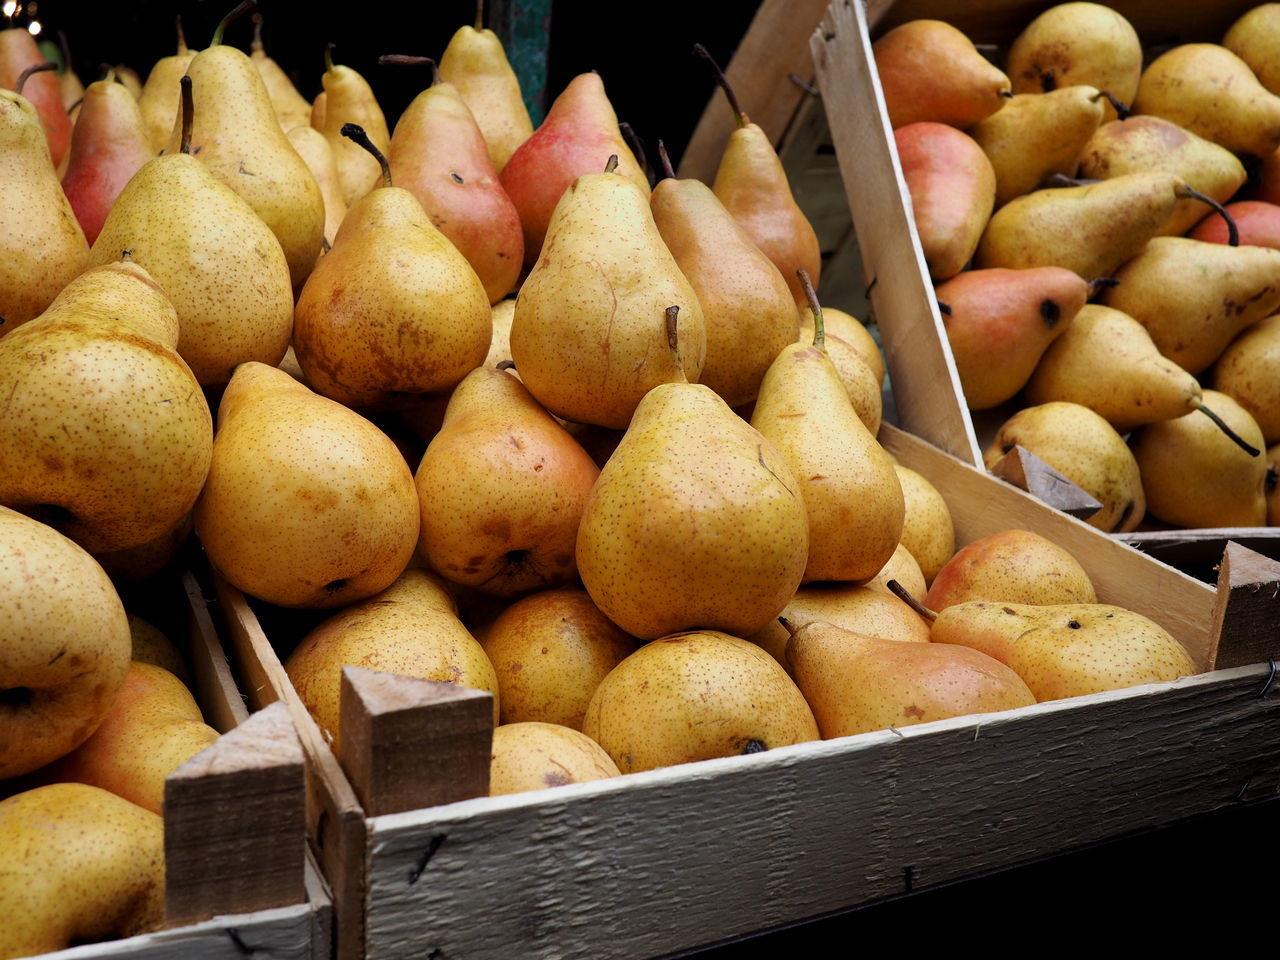 Autumn Pears for Sale Autumn Backgrounds Beautifully Organized Close-up Day Delicious Food Food And Drink For Sale Freshness Fruit Harvest Healthy Eating Imperfection Indoors  Large Group Of Objects Market No People Organic Pear Wooden Box Yellow